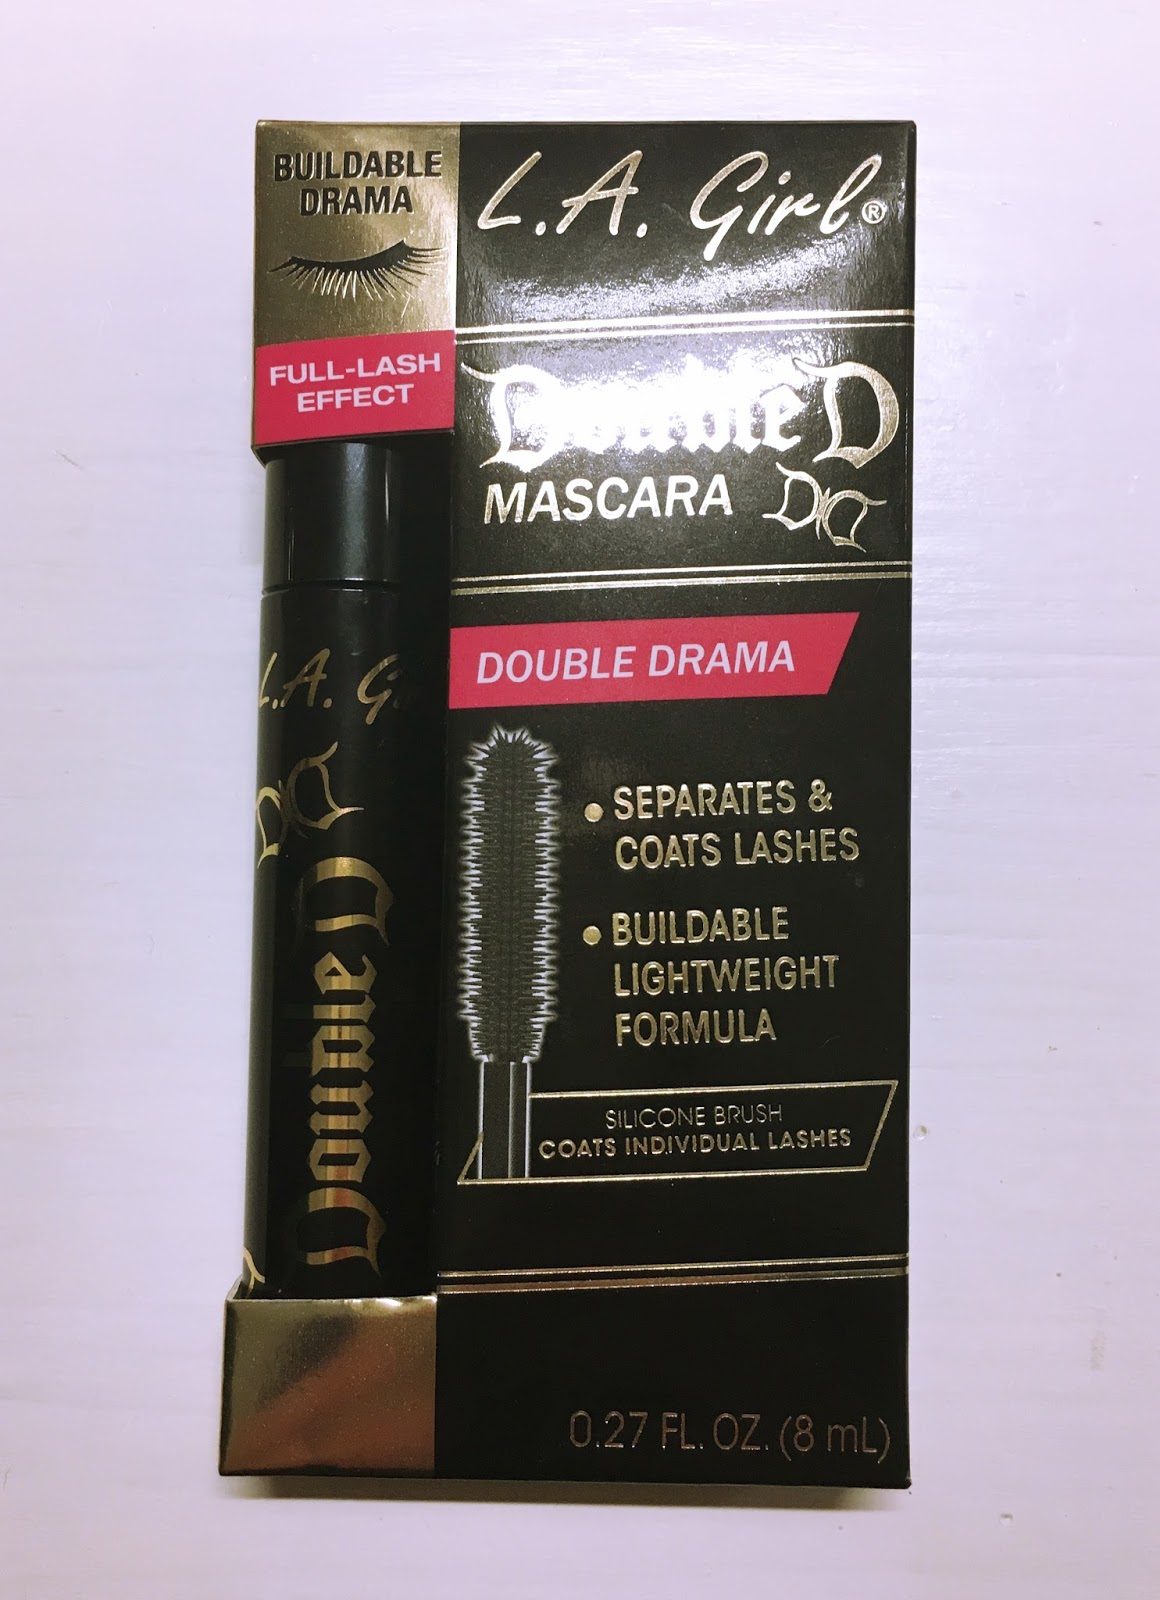 301a44001a2 Suzy Q-tip: Review: L.A. Girl Double Drama Mascara